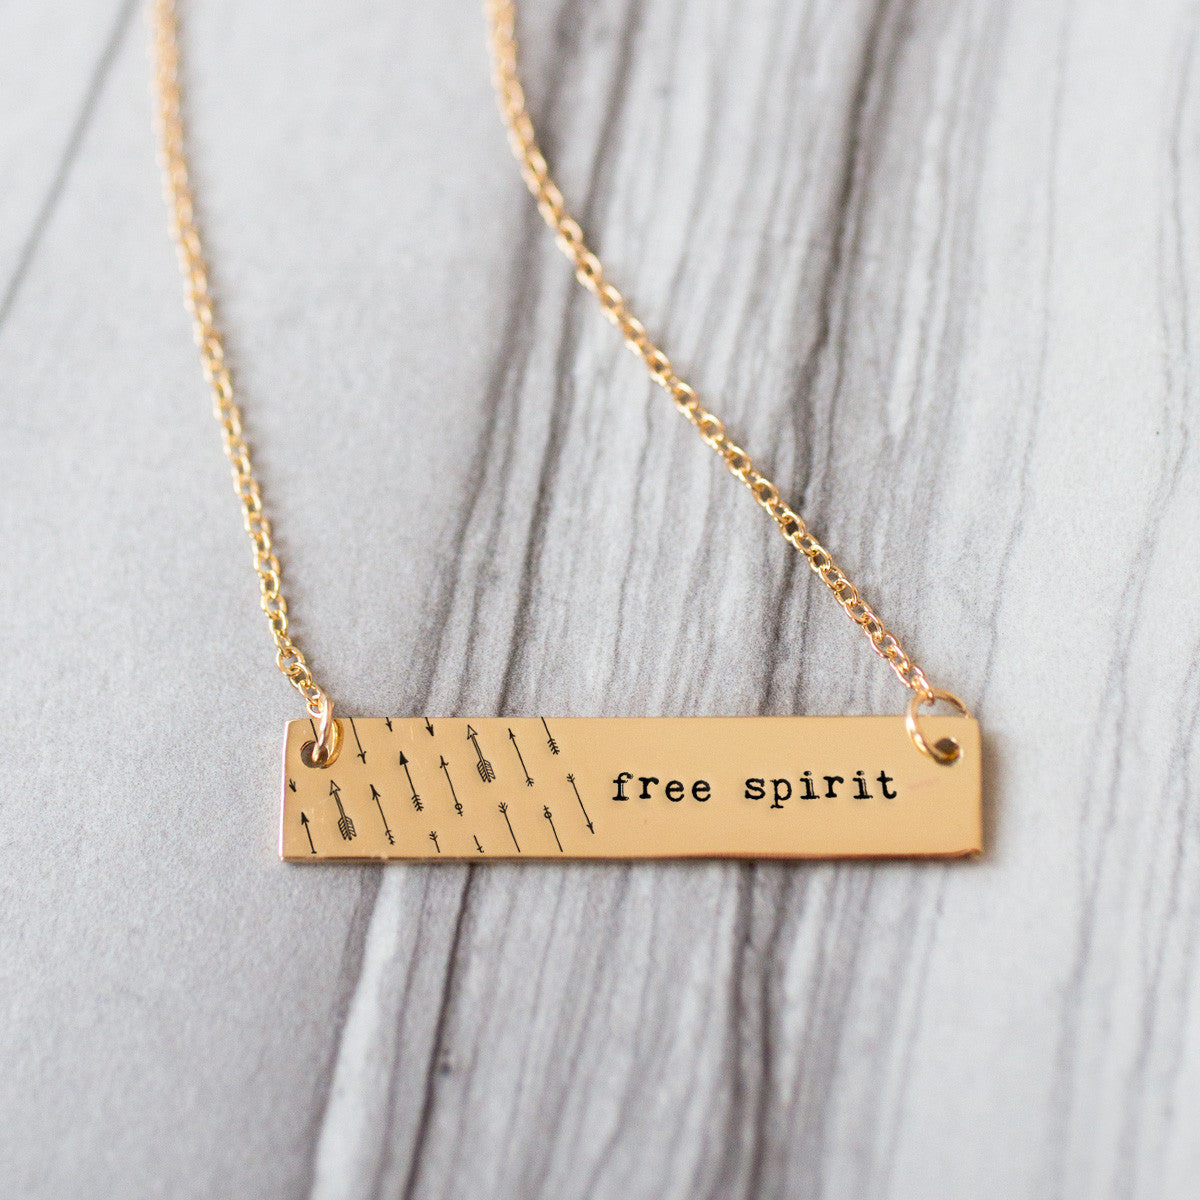 Free Spirit Gold / Silver Bar Necklace - Bridesmaid Gift - pipercleo.com